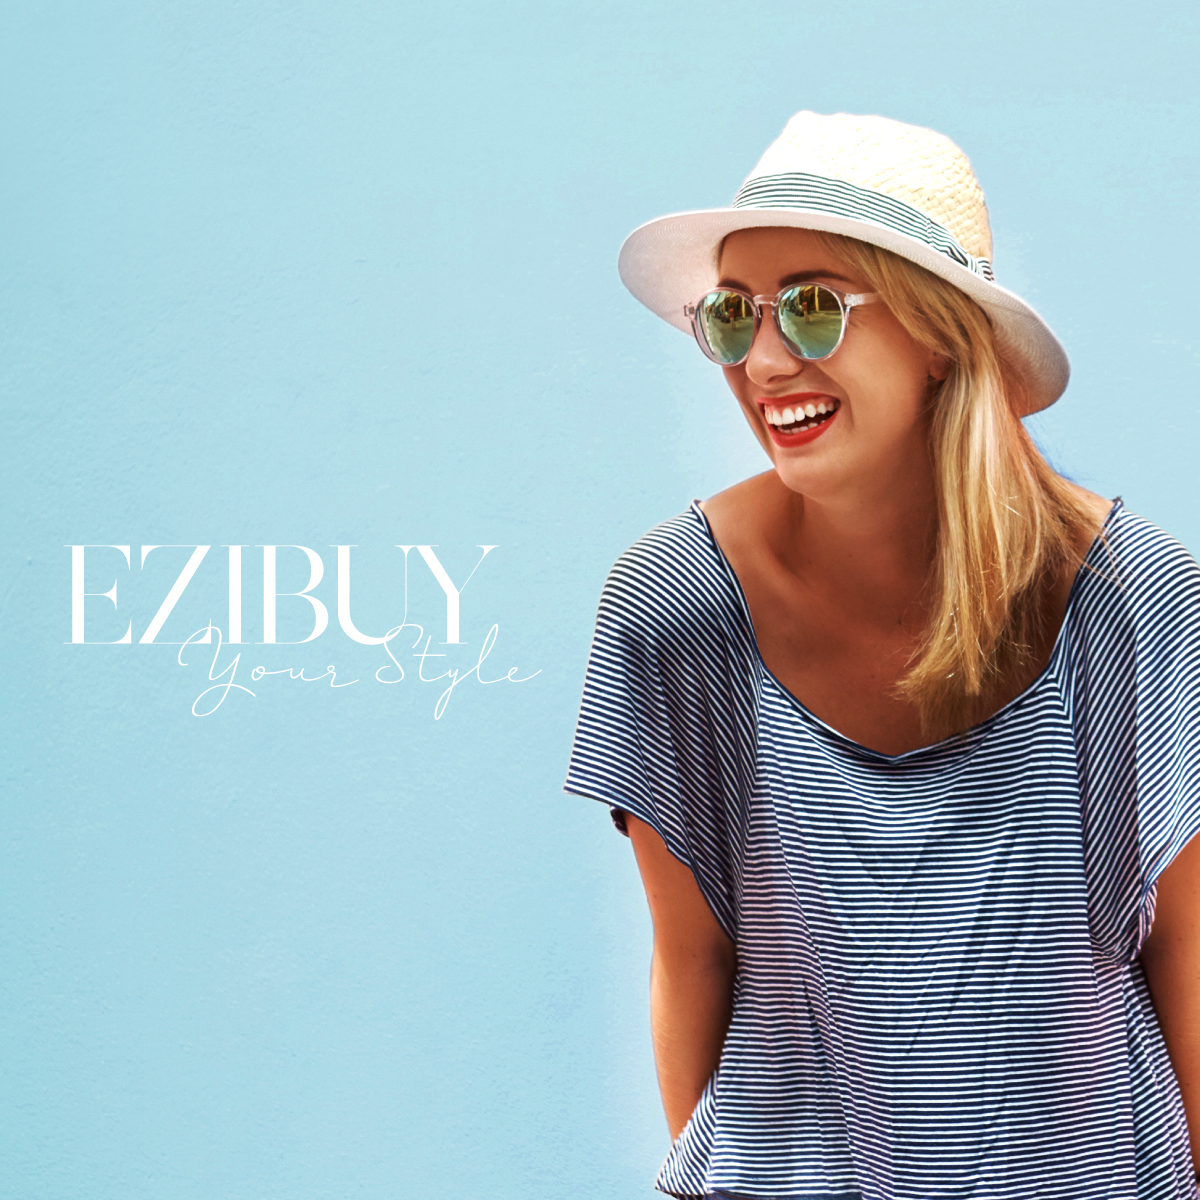 Ezibuy Brand Identity and Strategy Fashion Photography